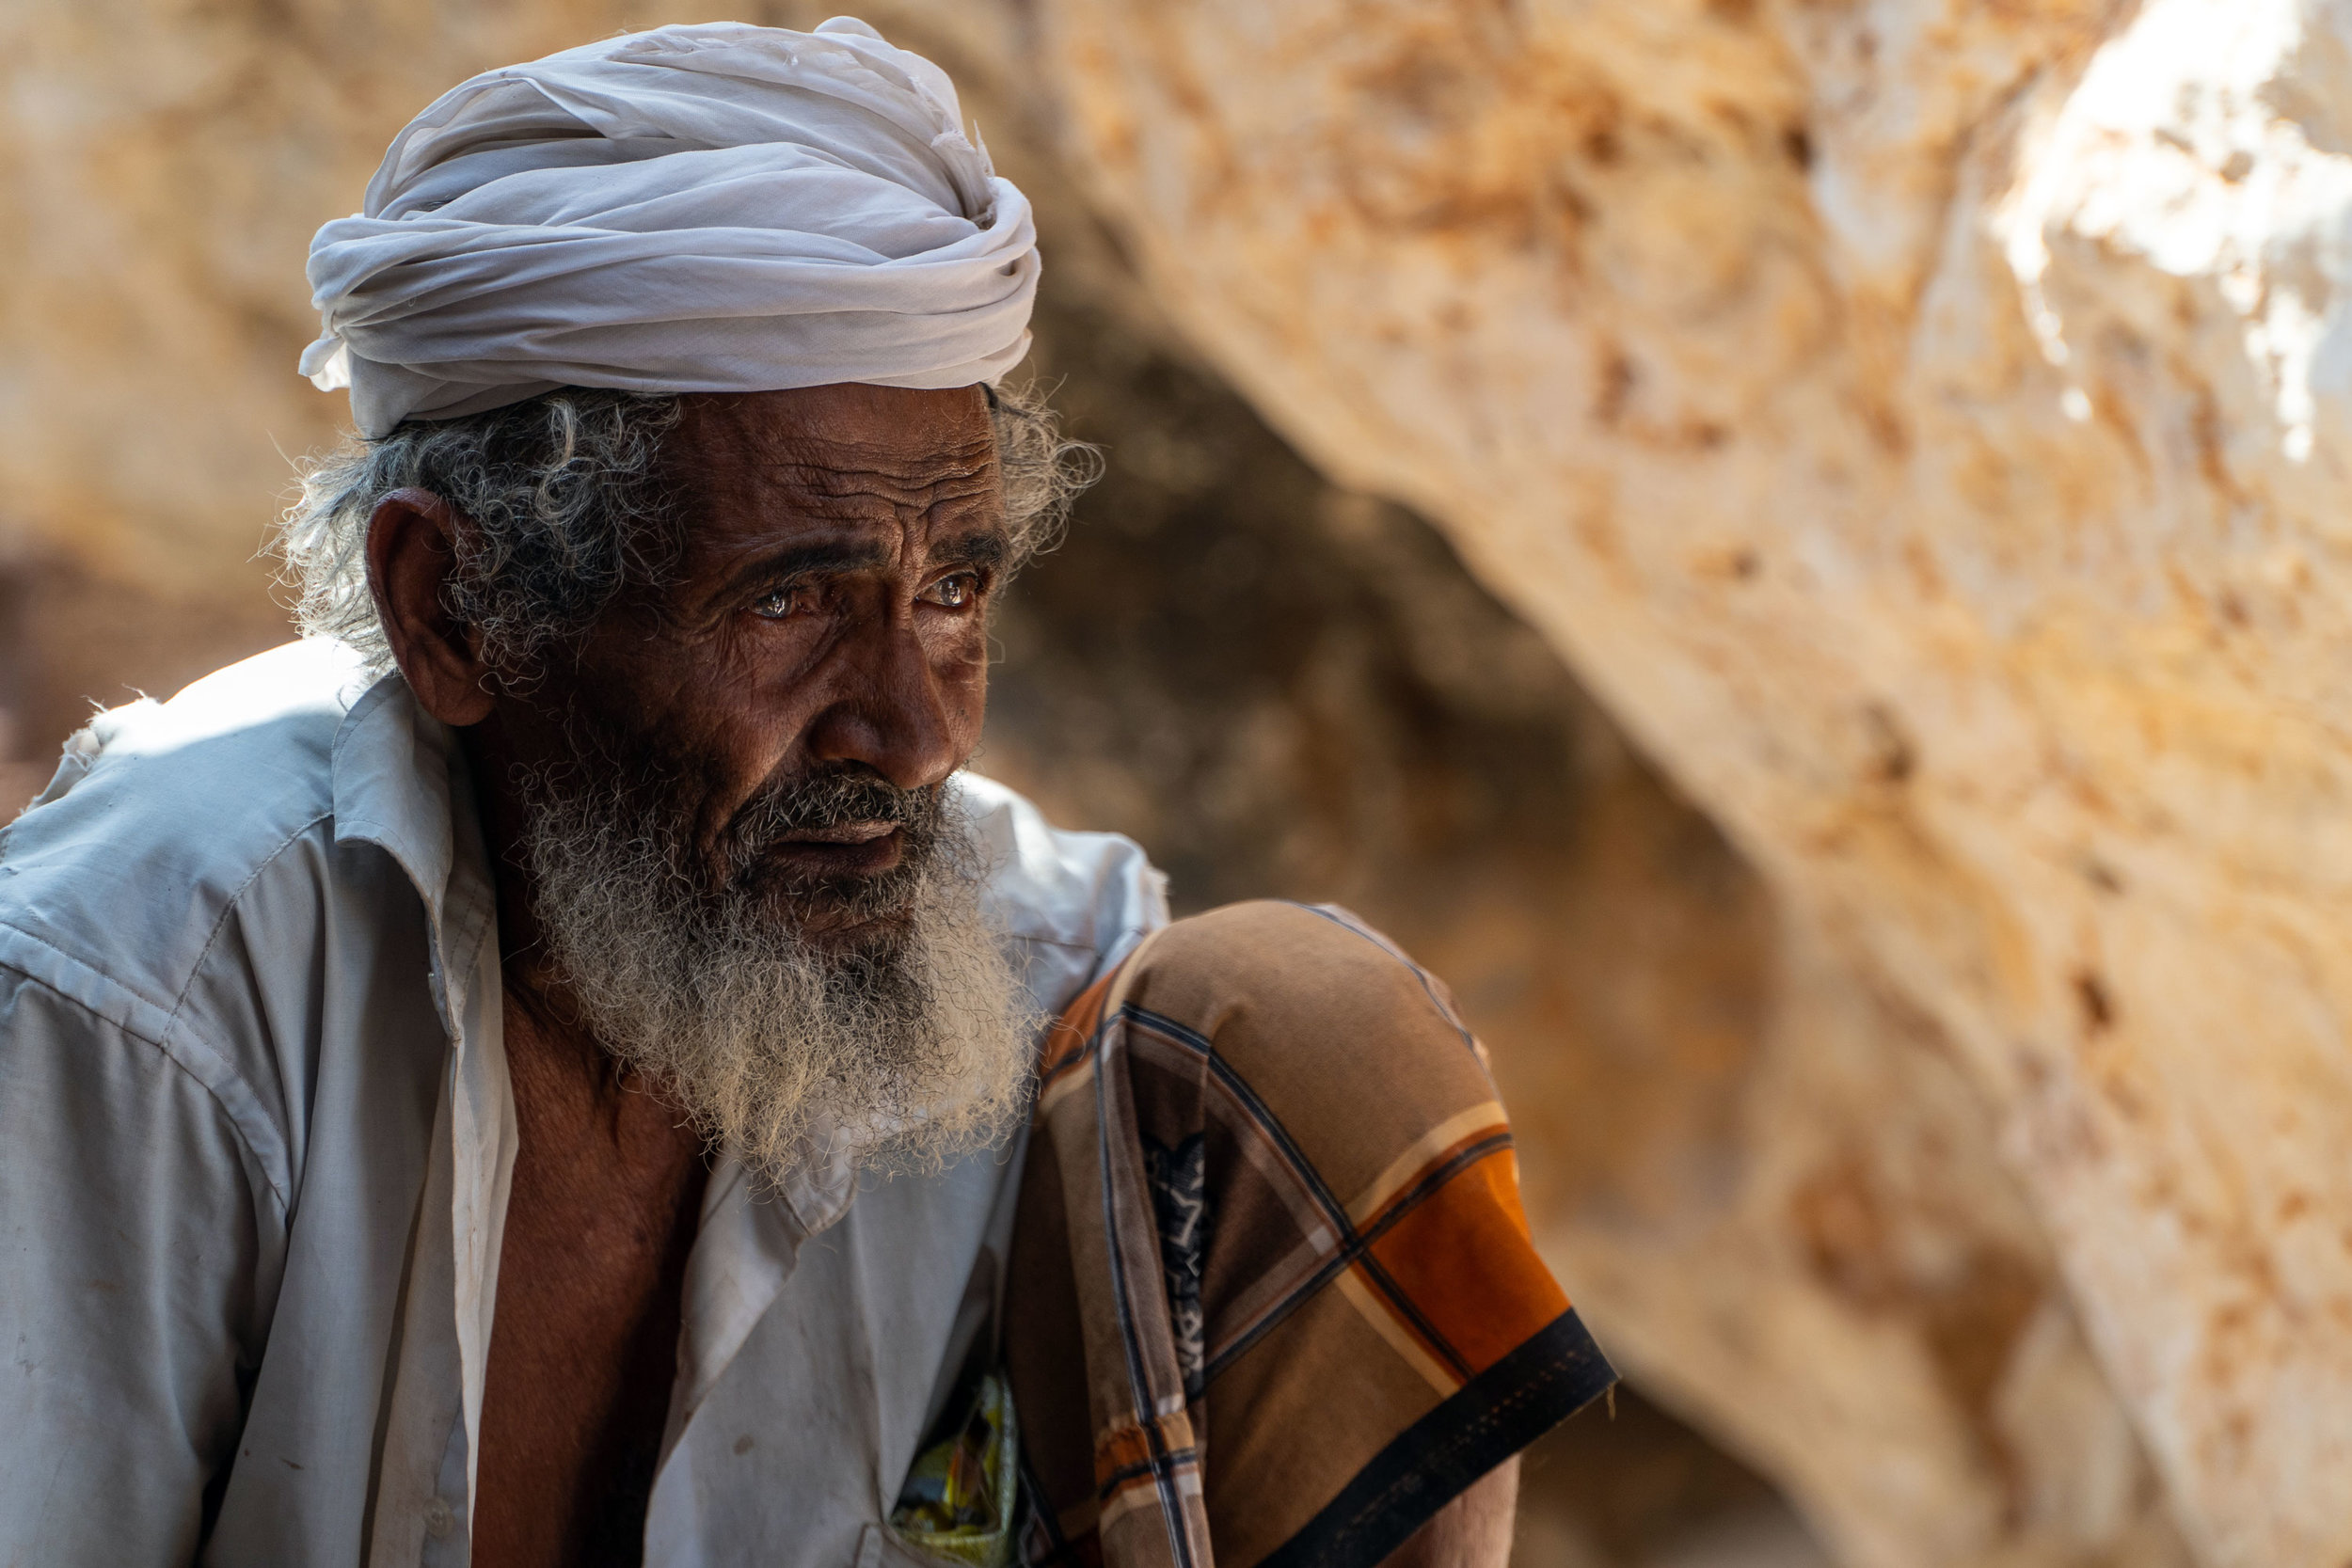 A Socotri elder takes a rest in his stone shelter in the remote Shu'ab region of far western Socotra. Accessible only by sea and hiking, Shu'ab is a remote community of Socotri bedouin who primarily raise goats. This man brings his herd to graze on the grasses along the coastline every day, drinking tea and smoking his tobacco pipe in his shelter before beginning the trek back to the village in the afternoon.